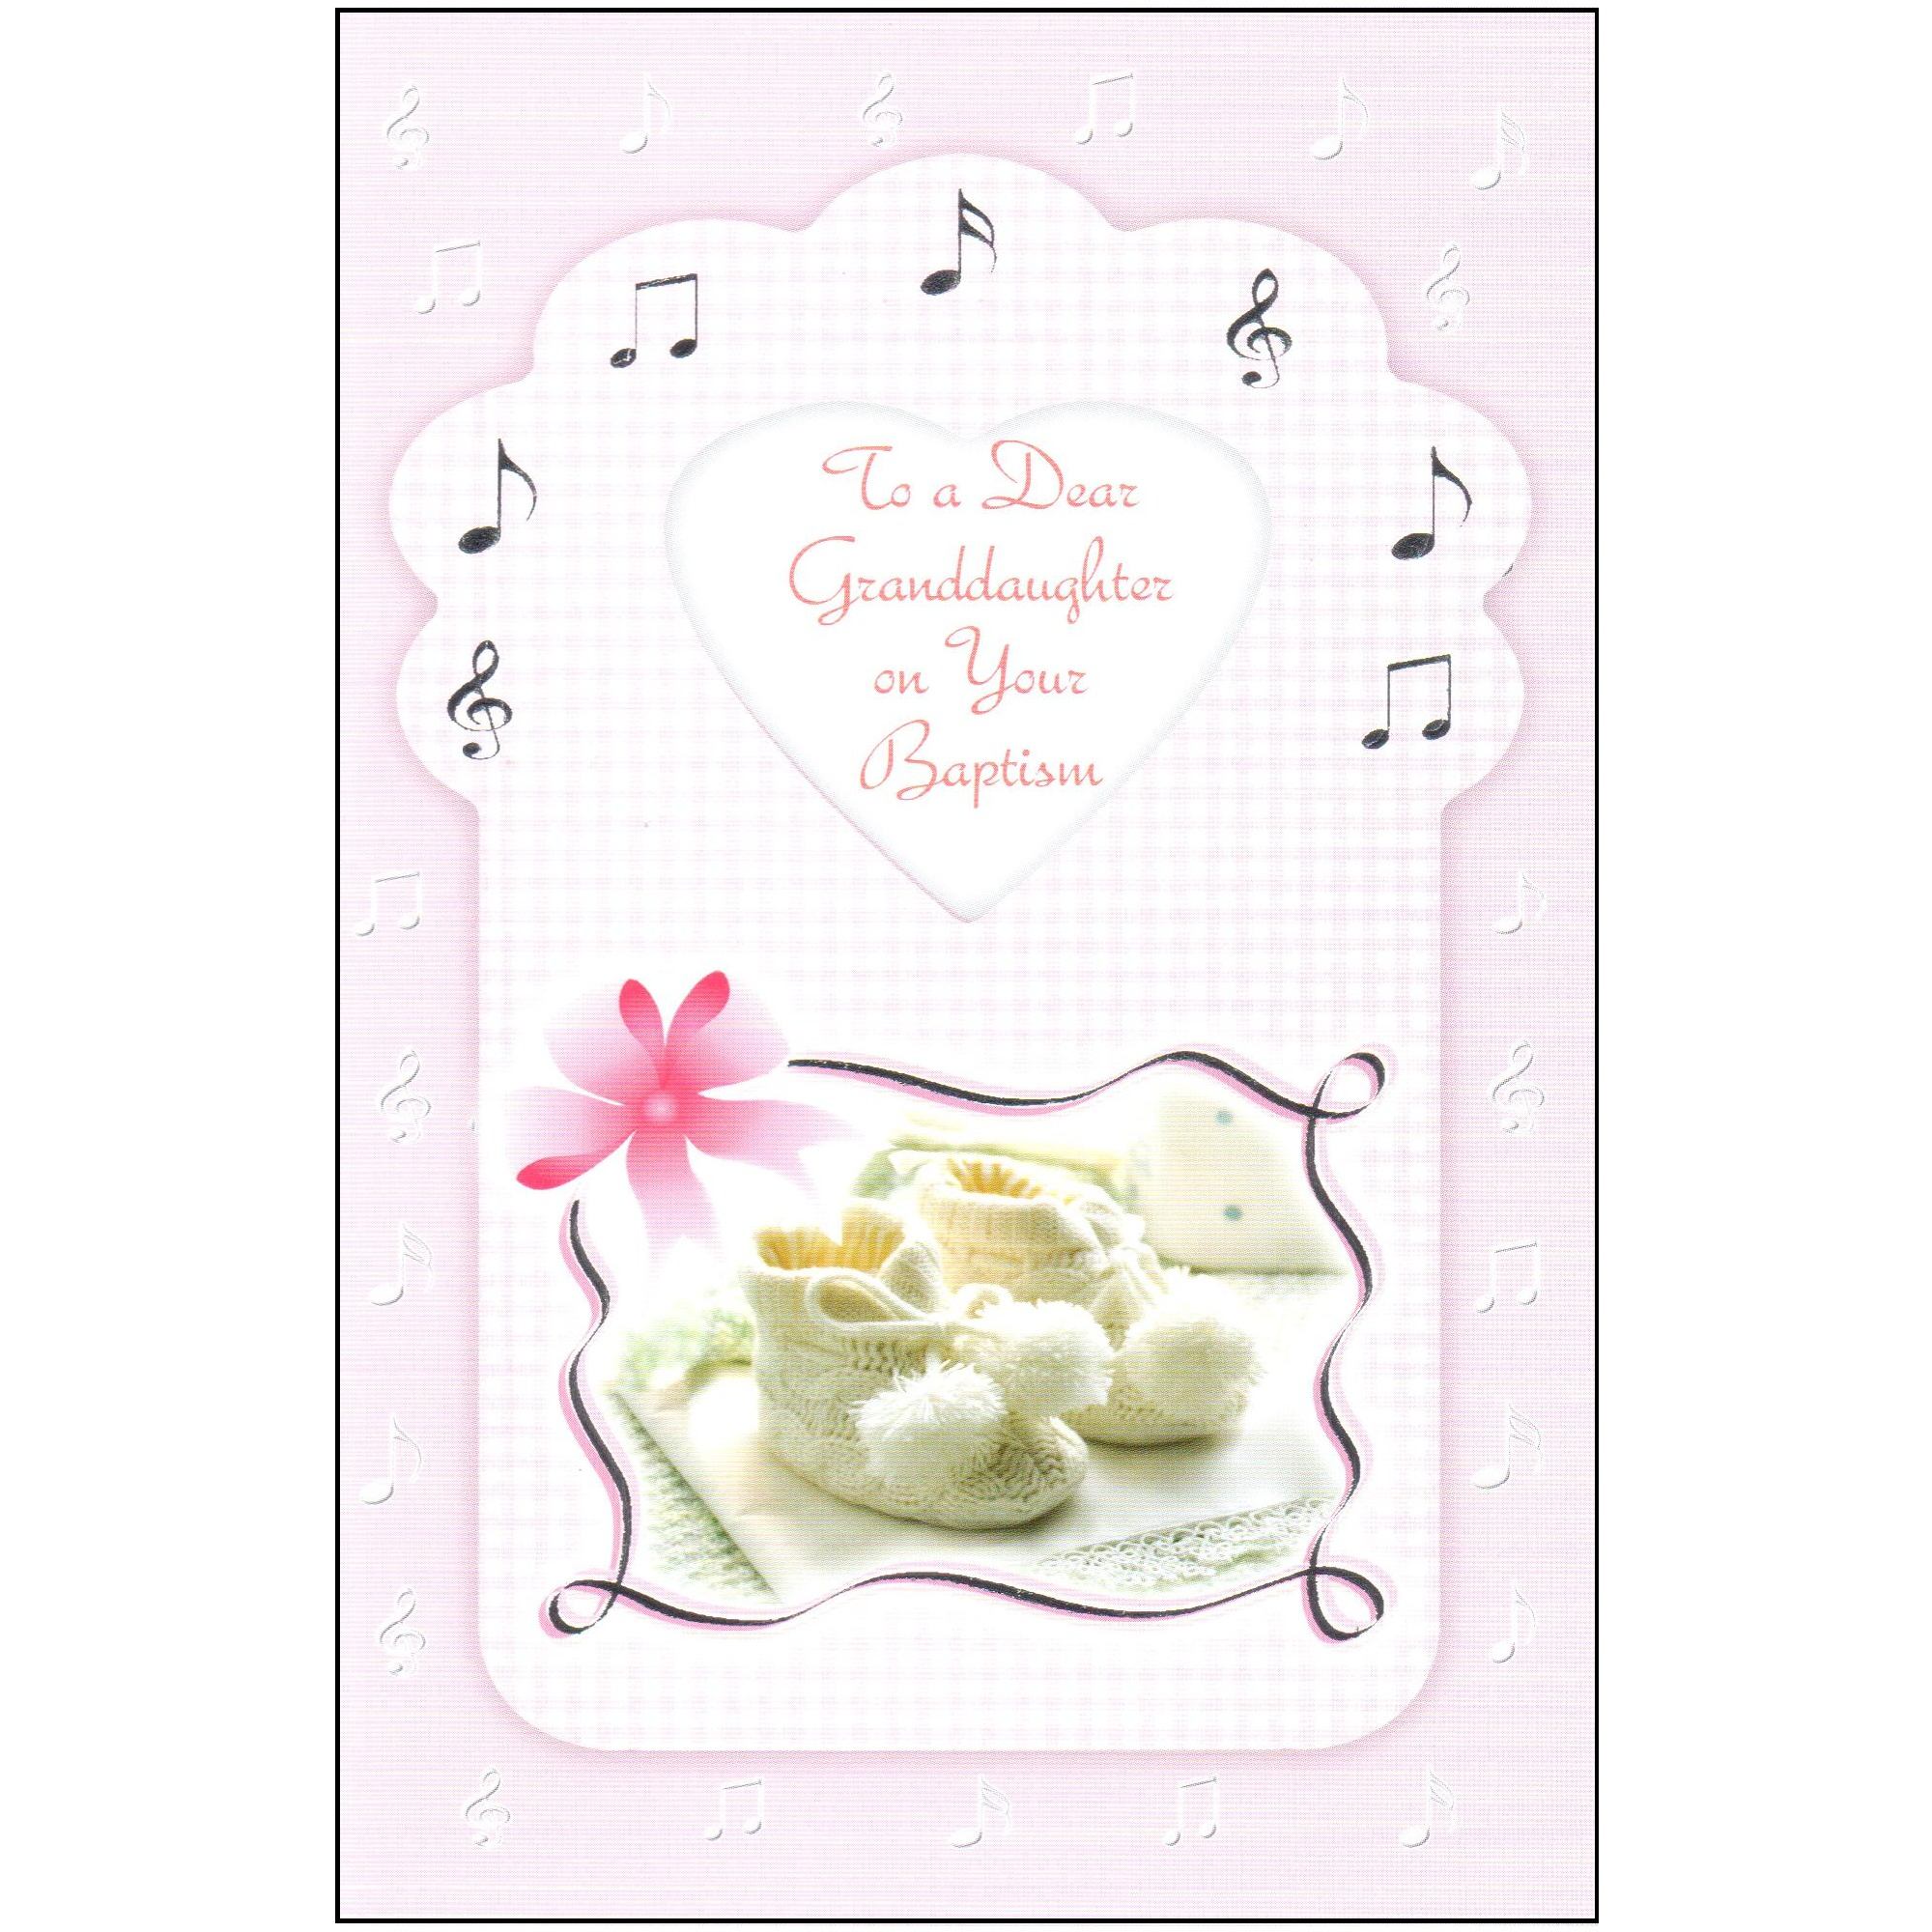 Baptism Greeting Card - Granddaughter | The Catholic Company - Free Printable Baptism Greeting Cards